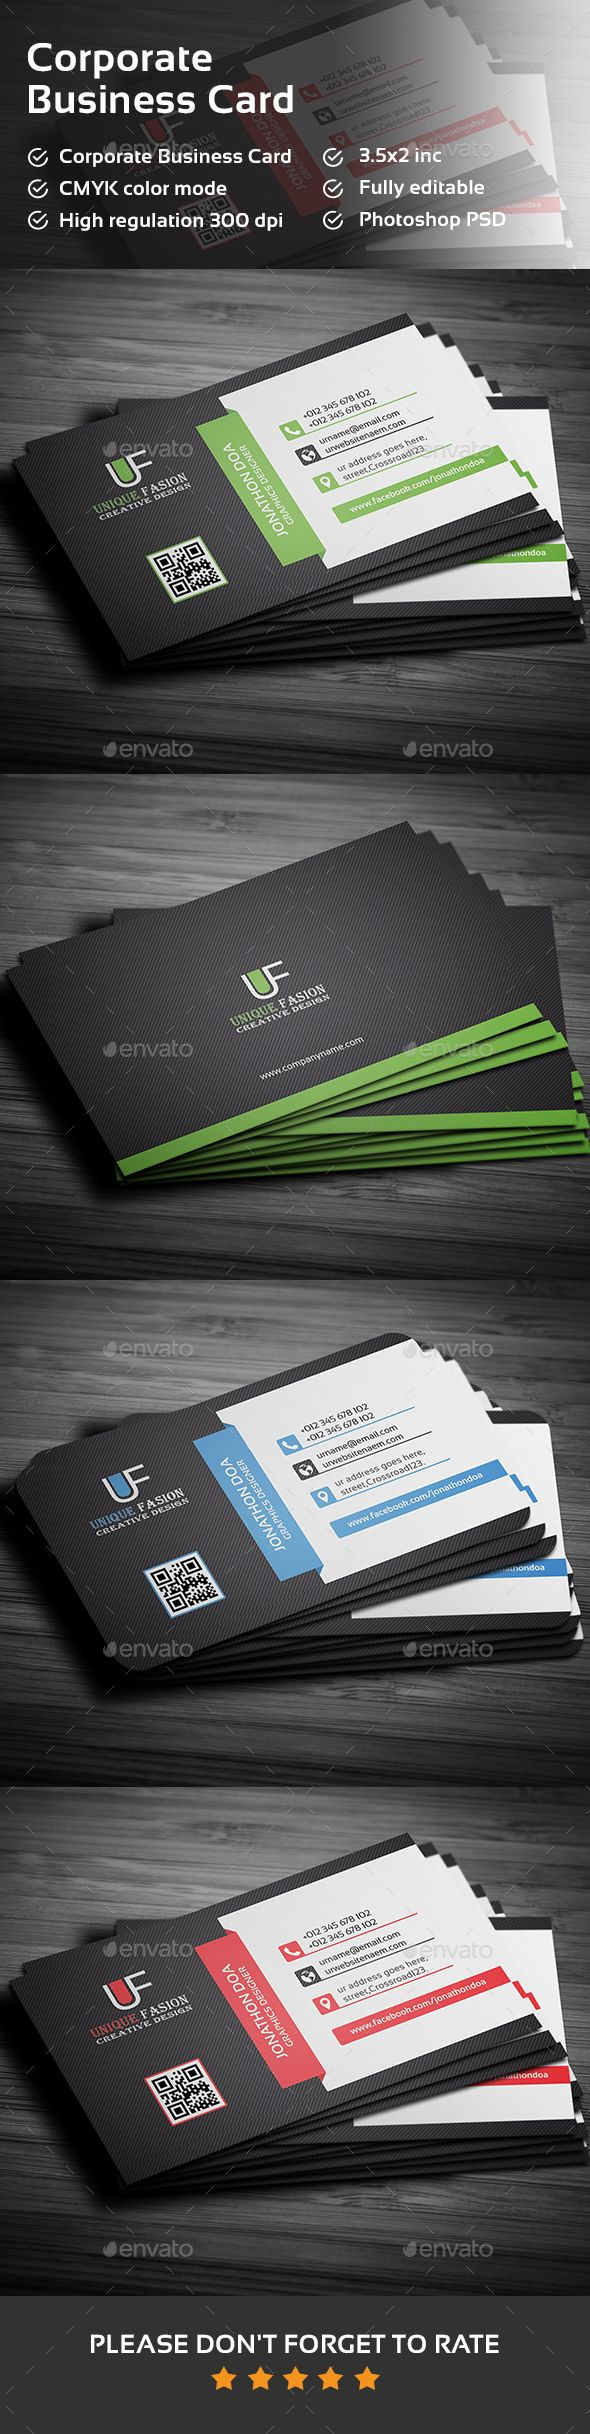 3023 best nice business cards on pinterest images on pinterest business card cheaphphosting Image collections